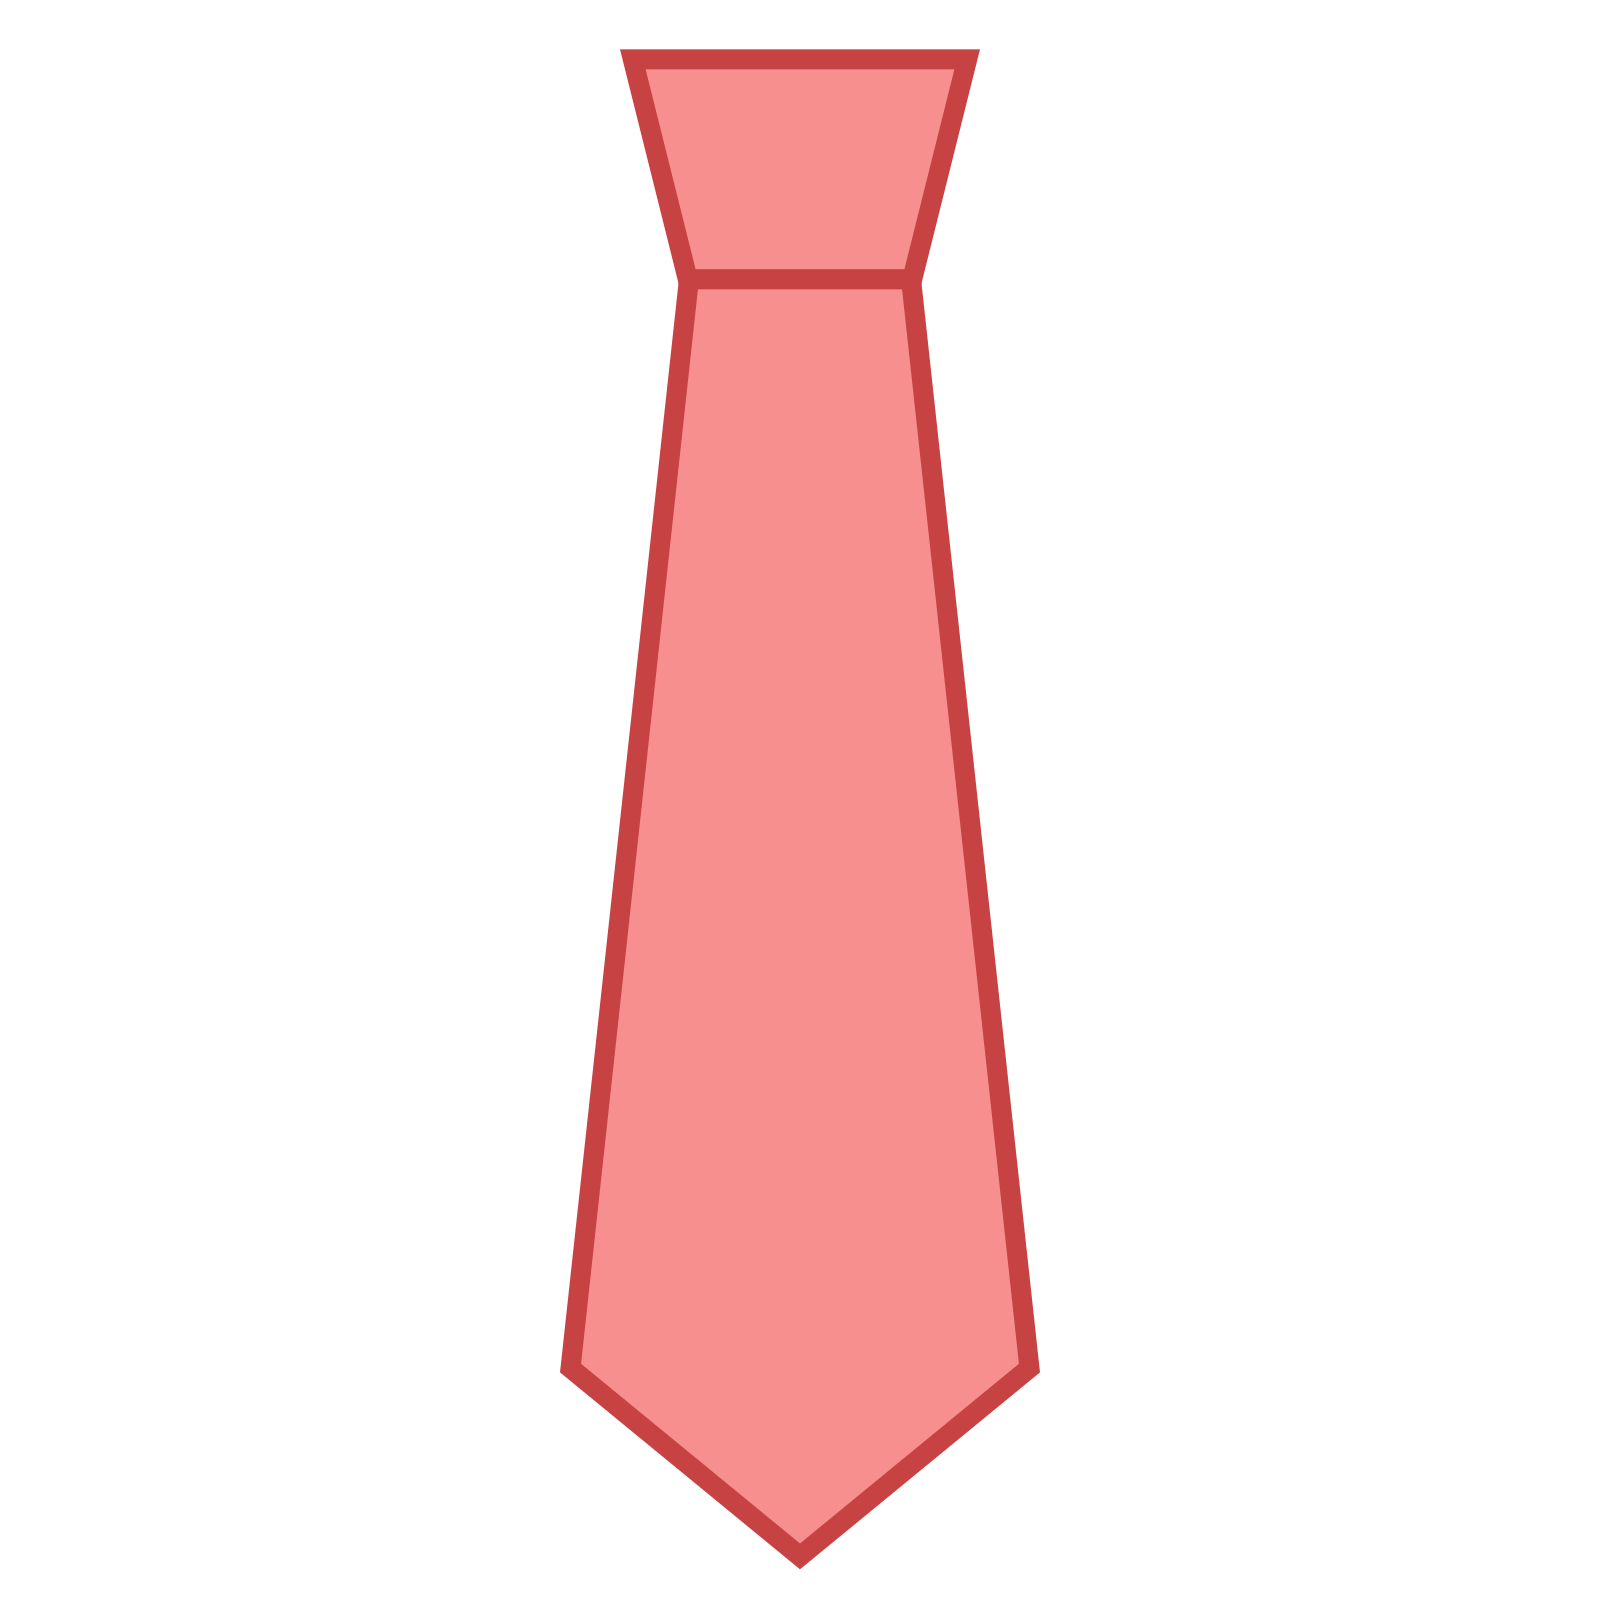 Tie clipart red clothes For icon Icons Tie Clothes